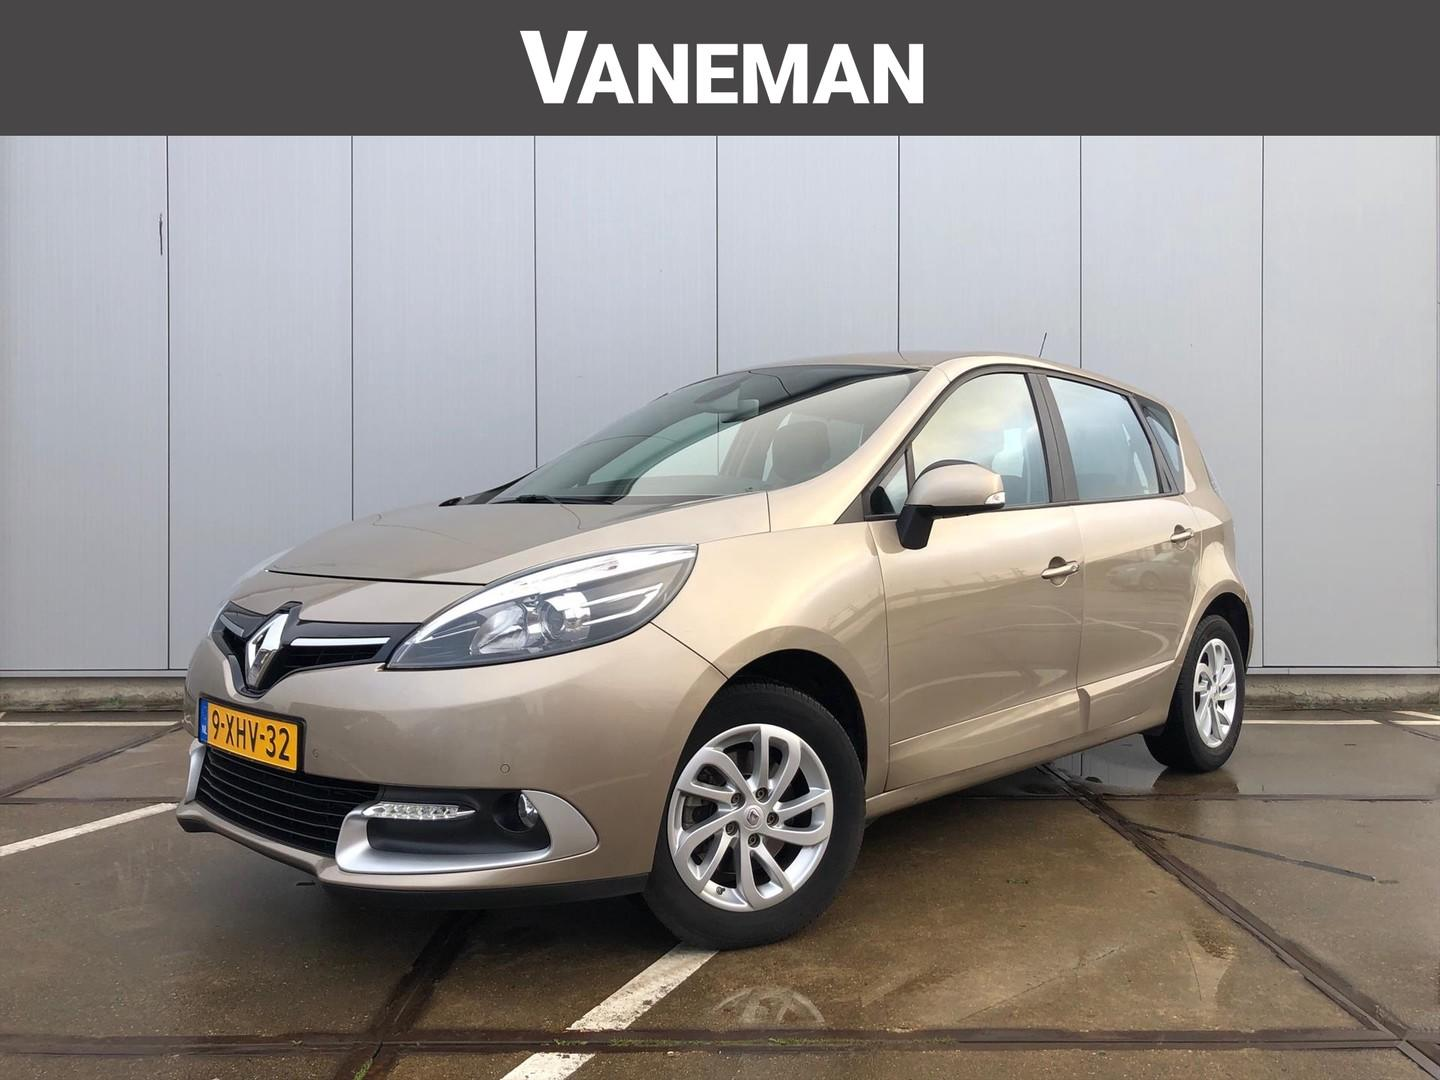 Renault Scénic 1.2 tce